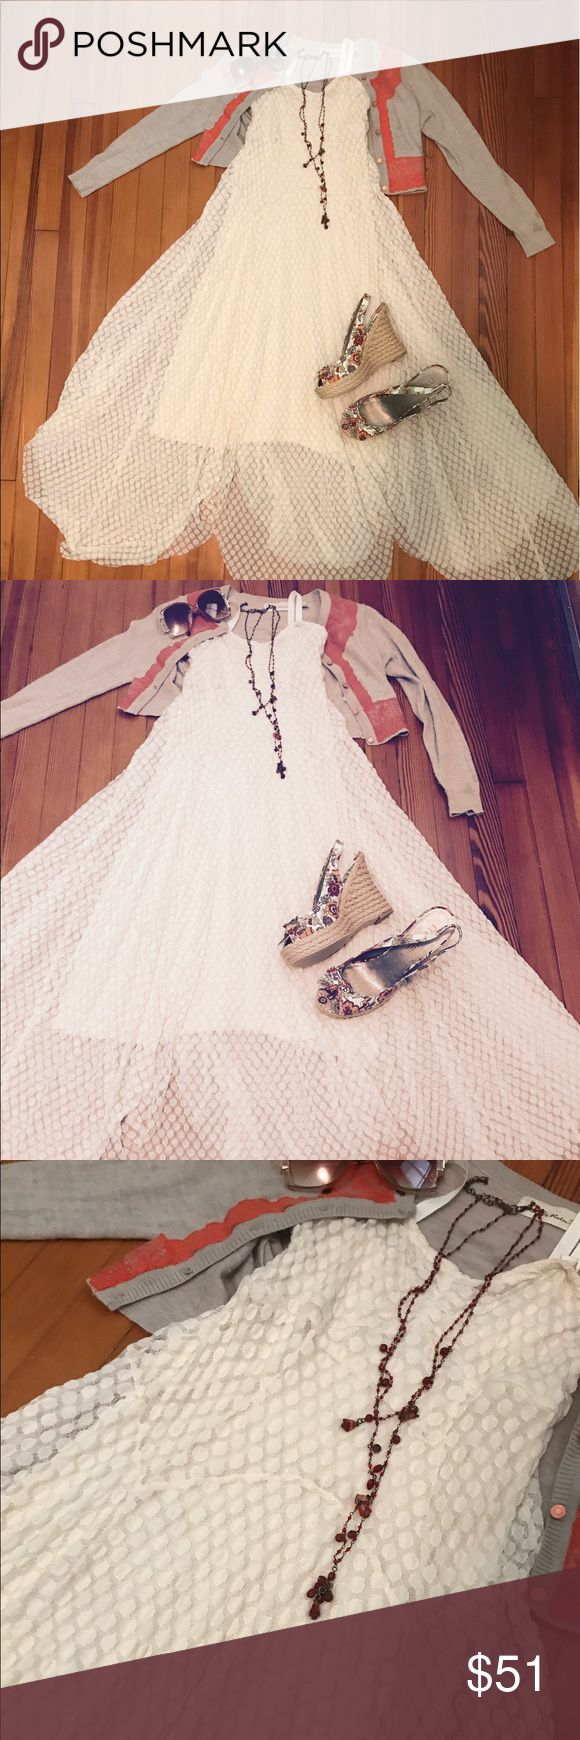 Ethereal Free People Maxi Dress Gauzy Free People Maxi dress with handkerchief hem. Dress is fully lined with removable straps so it's easy to dress it up or down. The fabric has stretch so it will Fit and flatter any body shape! Free People Dresses Midi